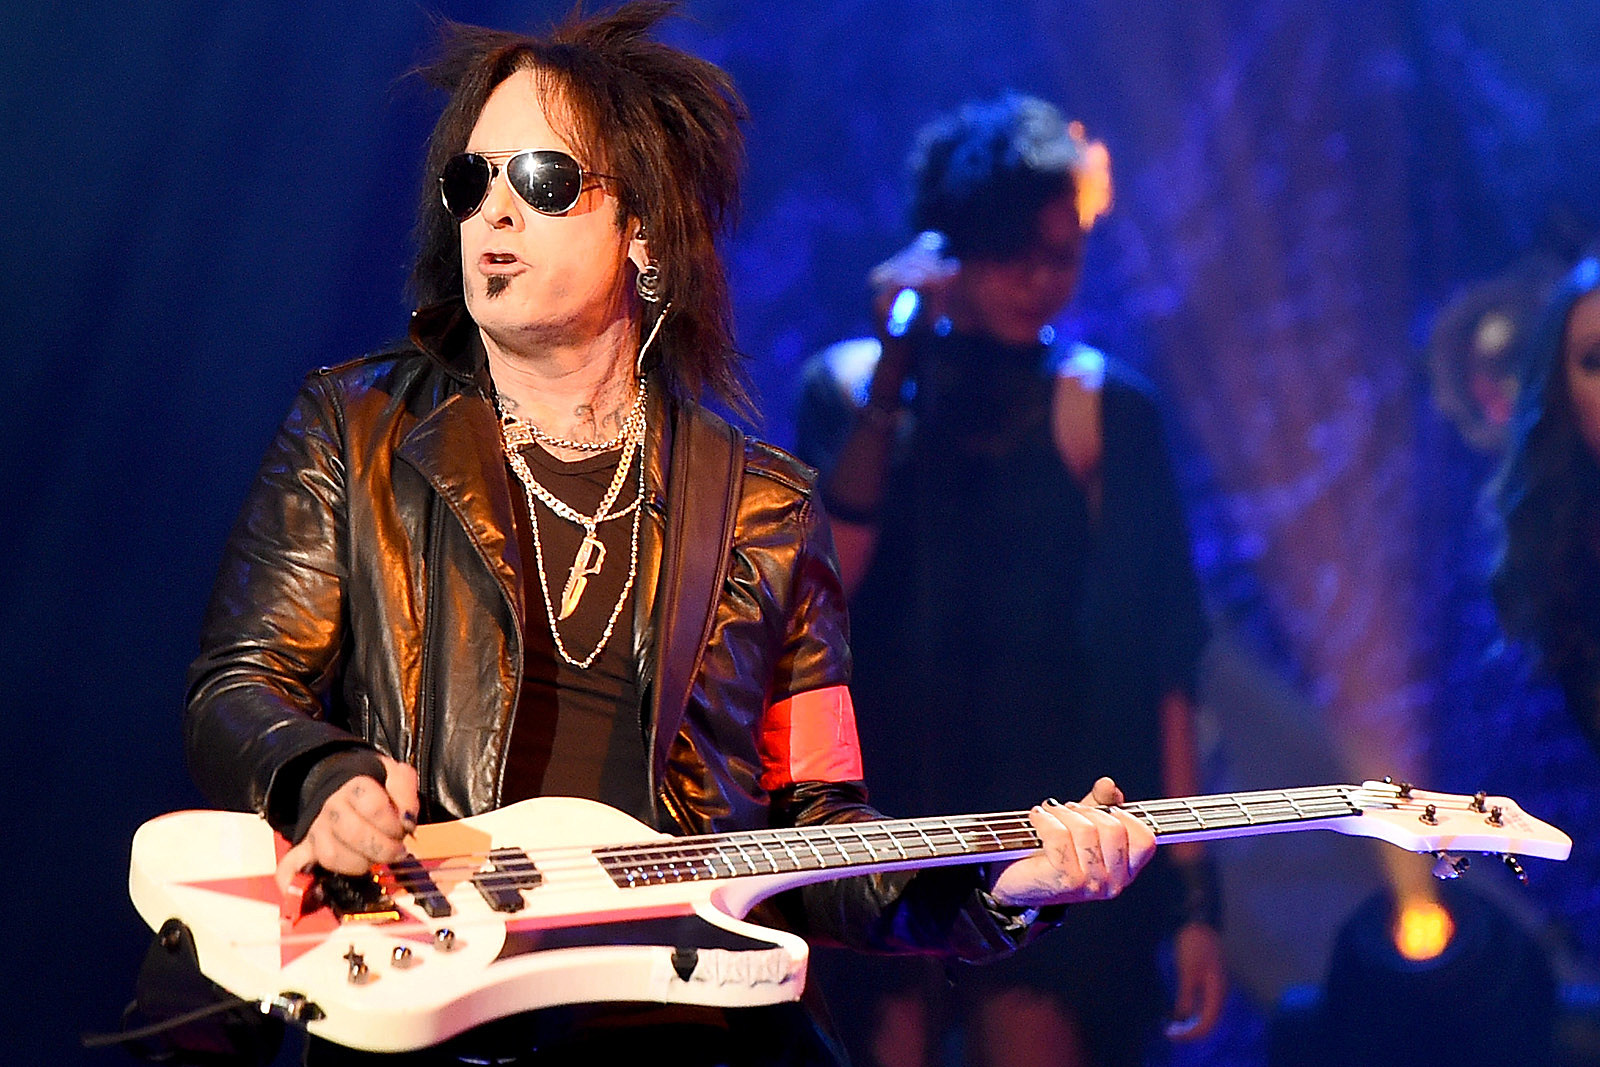 Nikki Sixx Reveals What Surprised Him Most About 'The Dirt' Movie